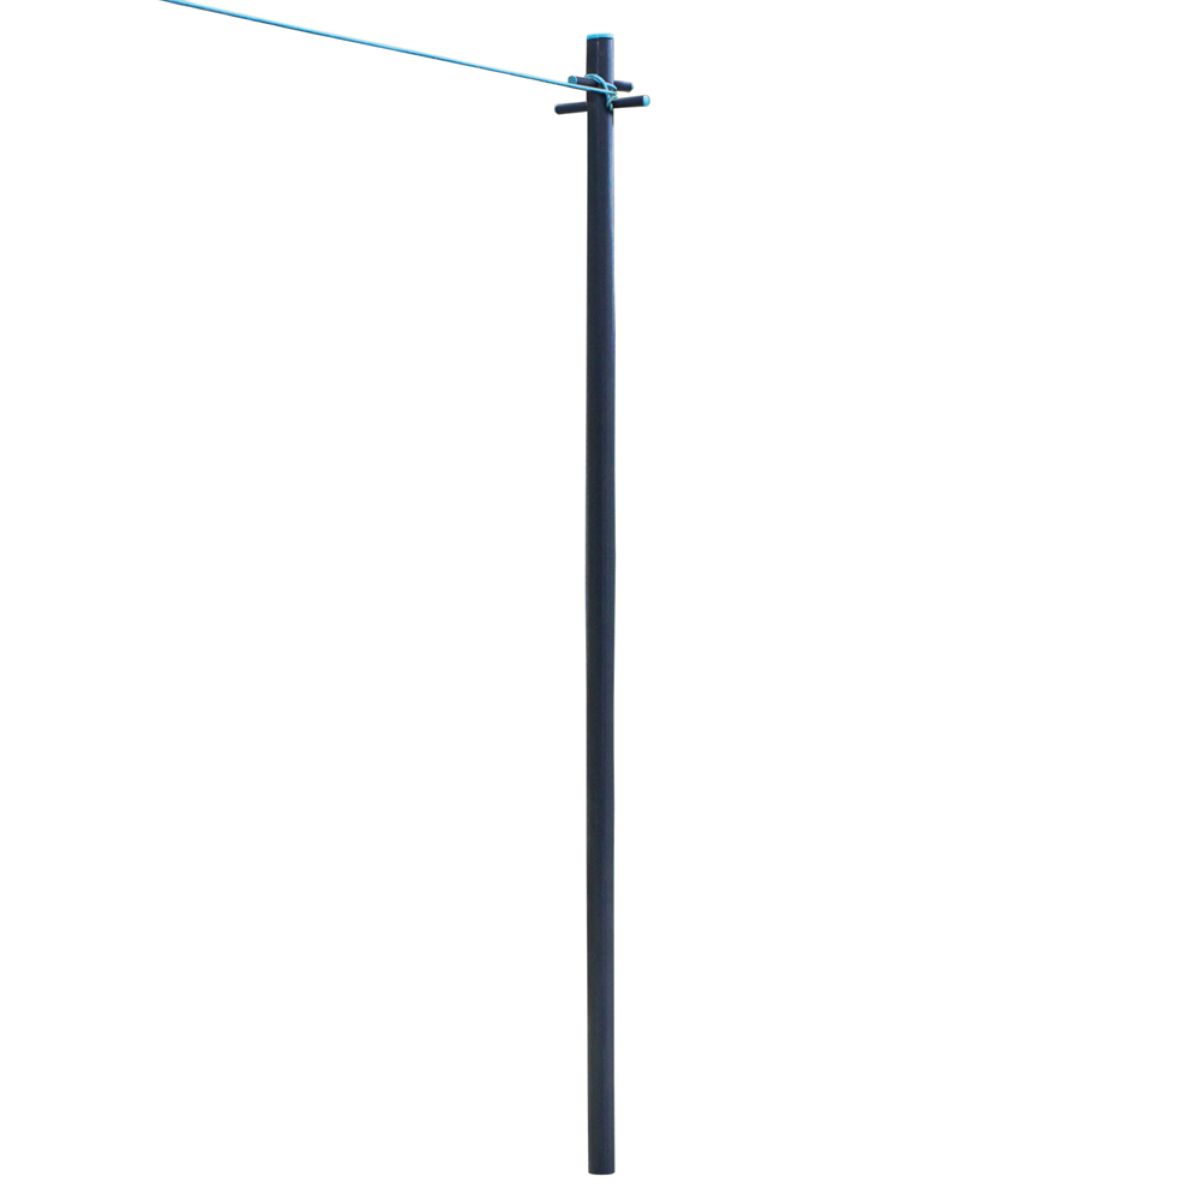 JVL Clothes Pole Post with Washing Line and Ground Socket